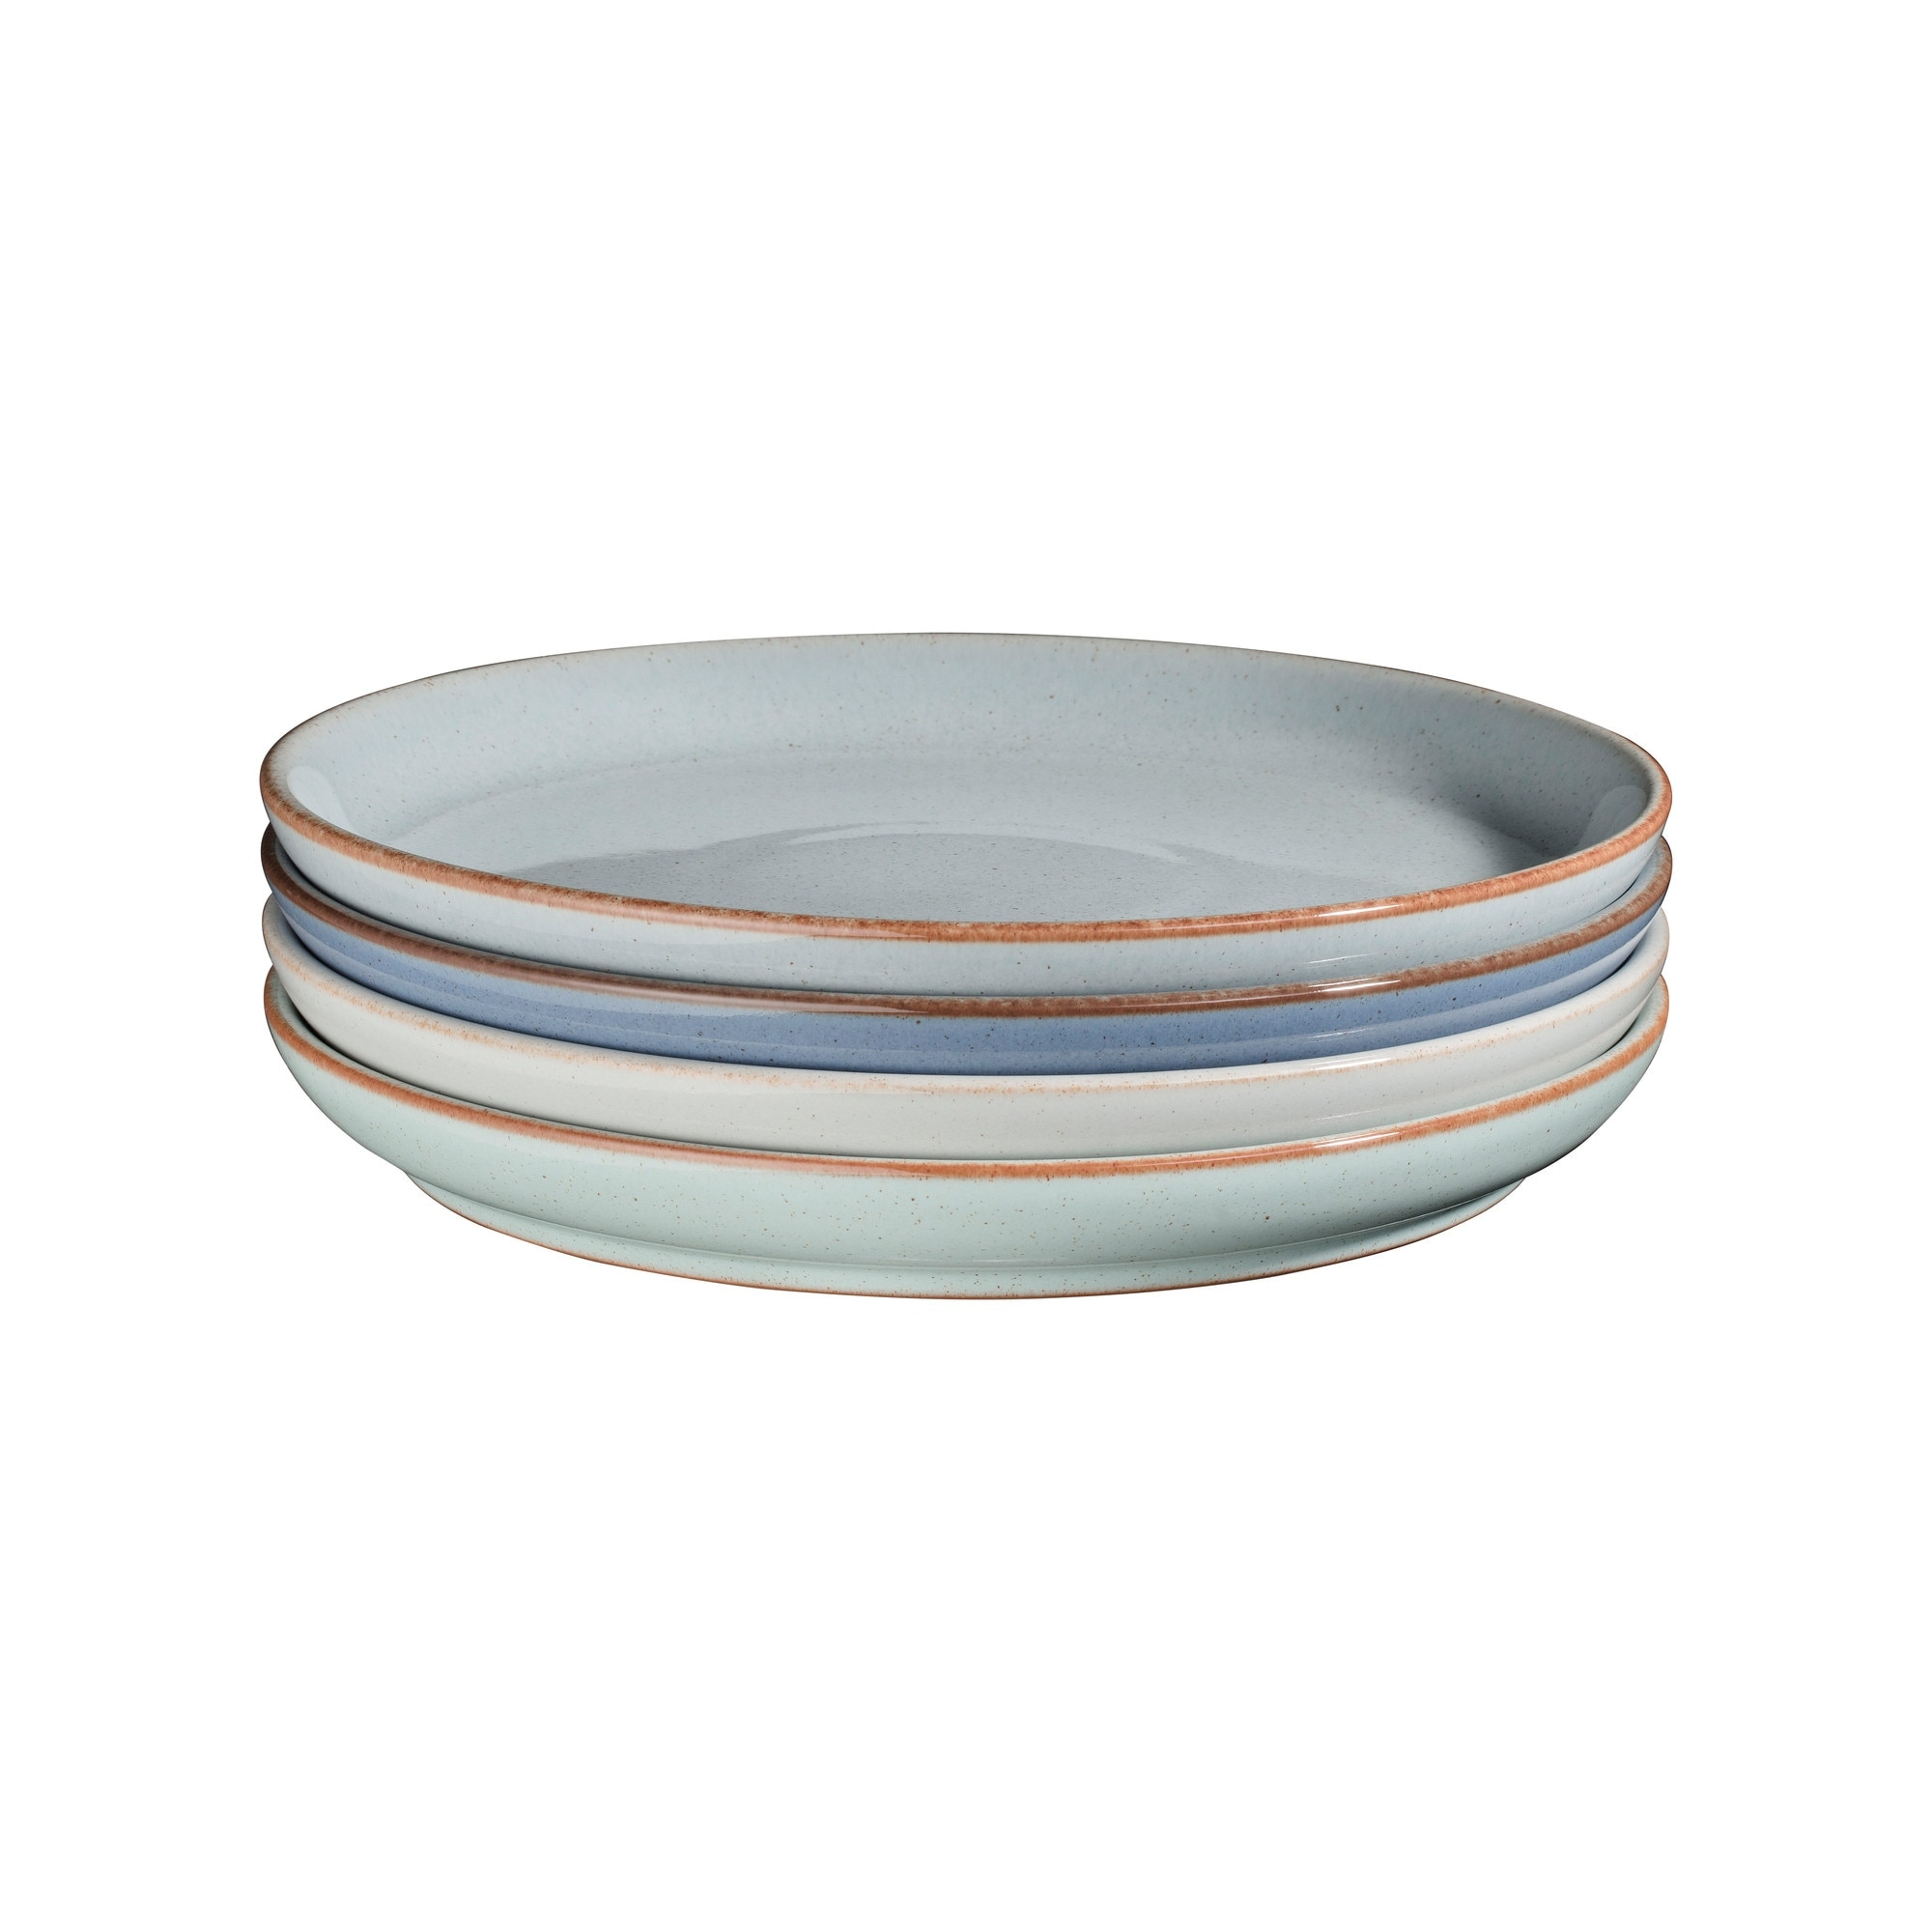 Compare retail prices of Always Entertaining The Blue Edit 4 Piece Medium Coupe Plate Set to get the best deal online